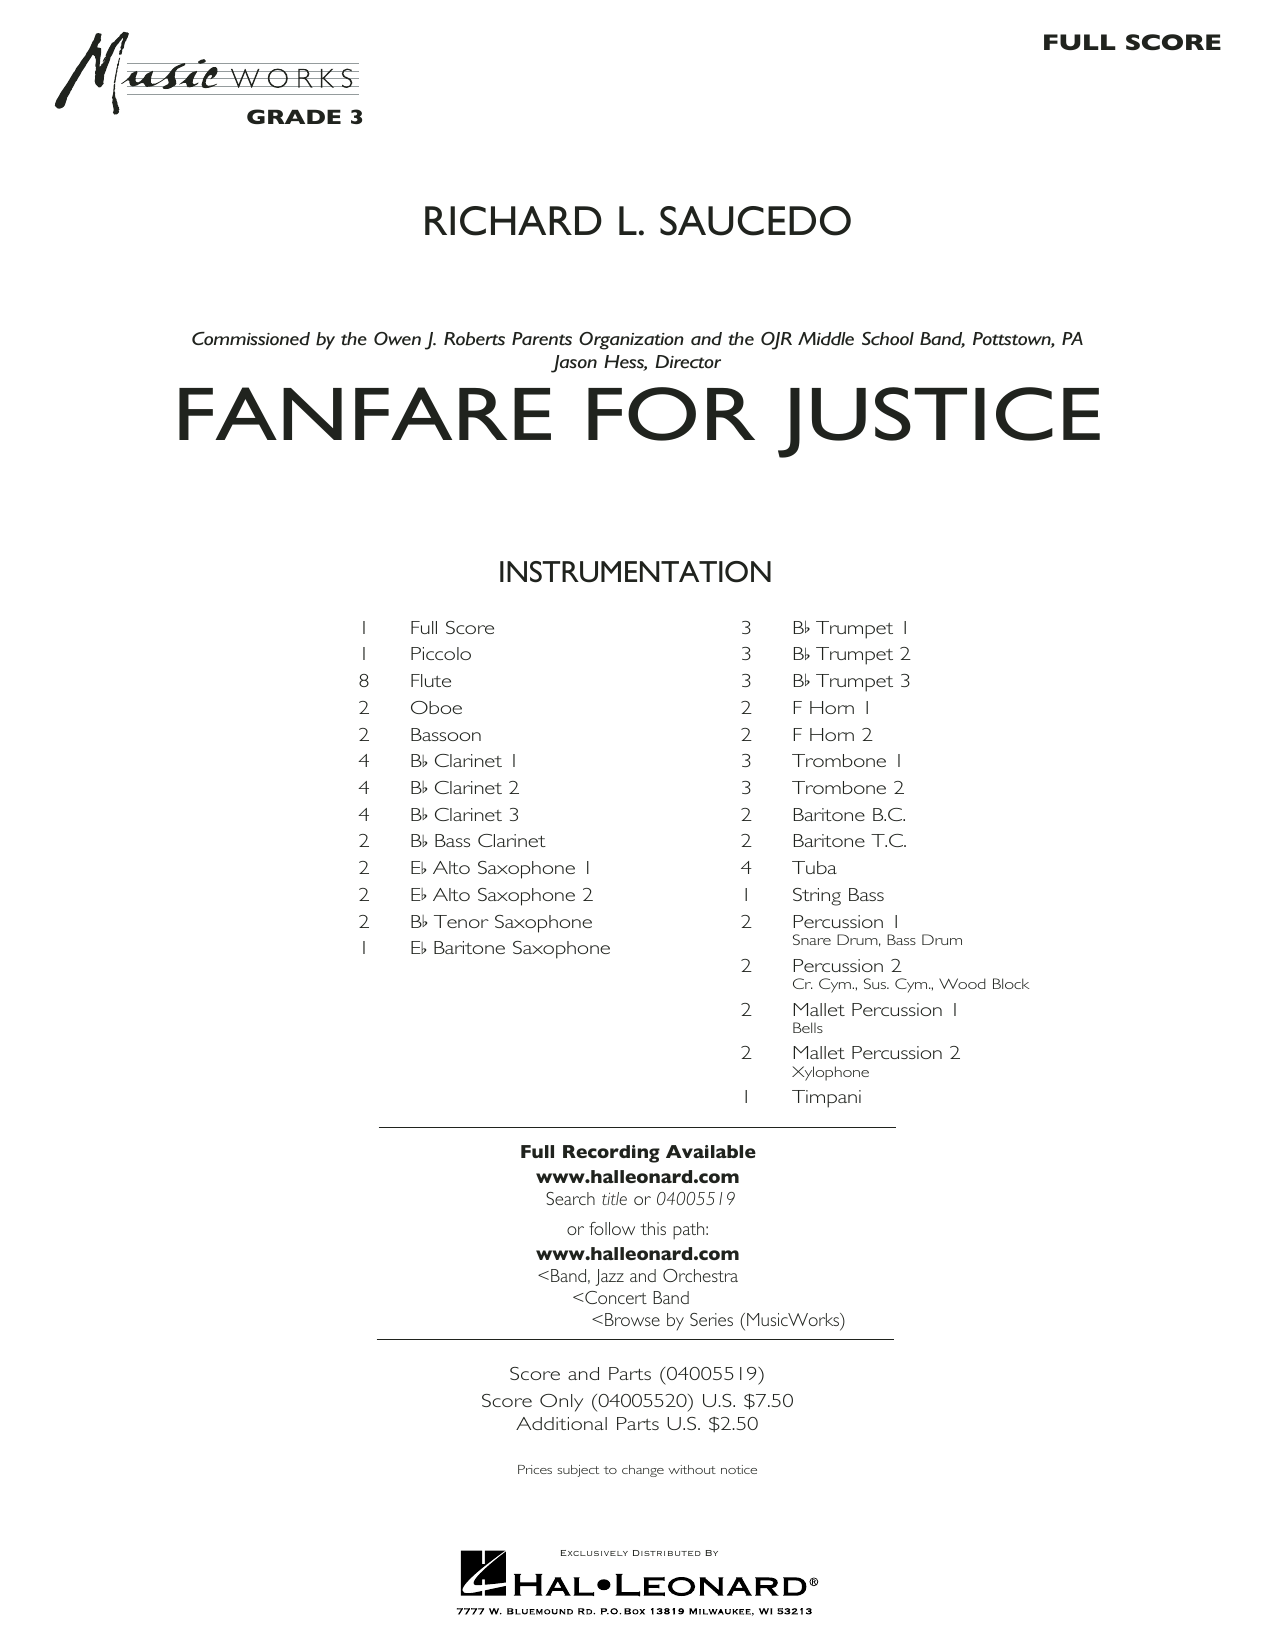 Richard L. Saucedo Fanfare for Justice - Conductor Score (Full Score) sheet music notes and chords. Download Printable PDF.